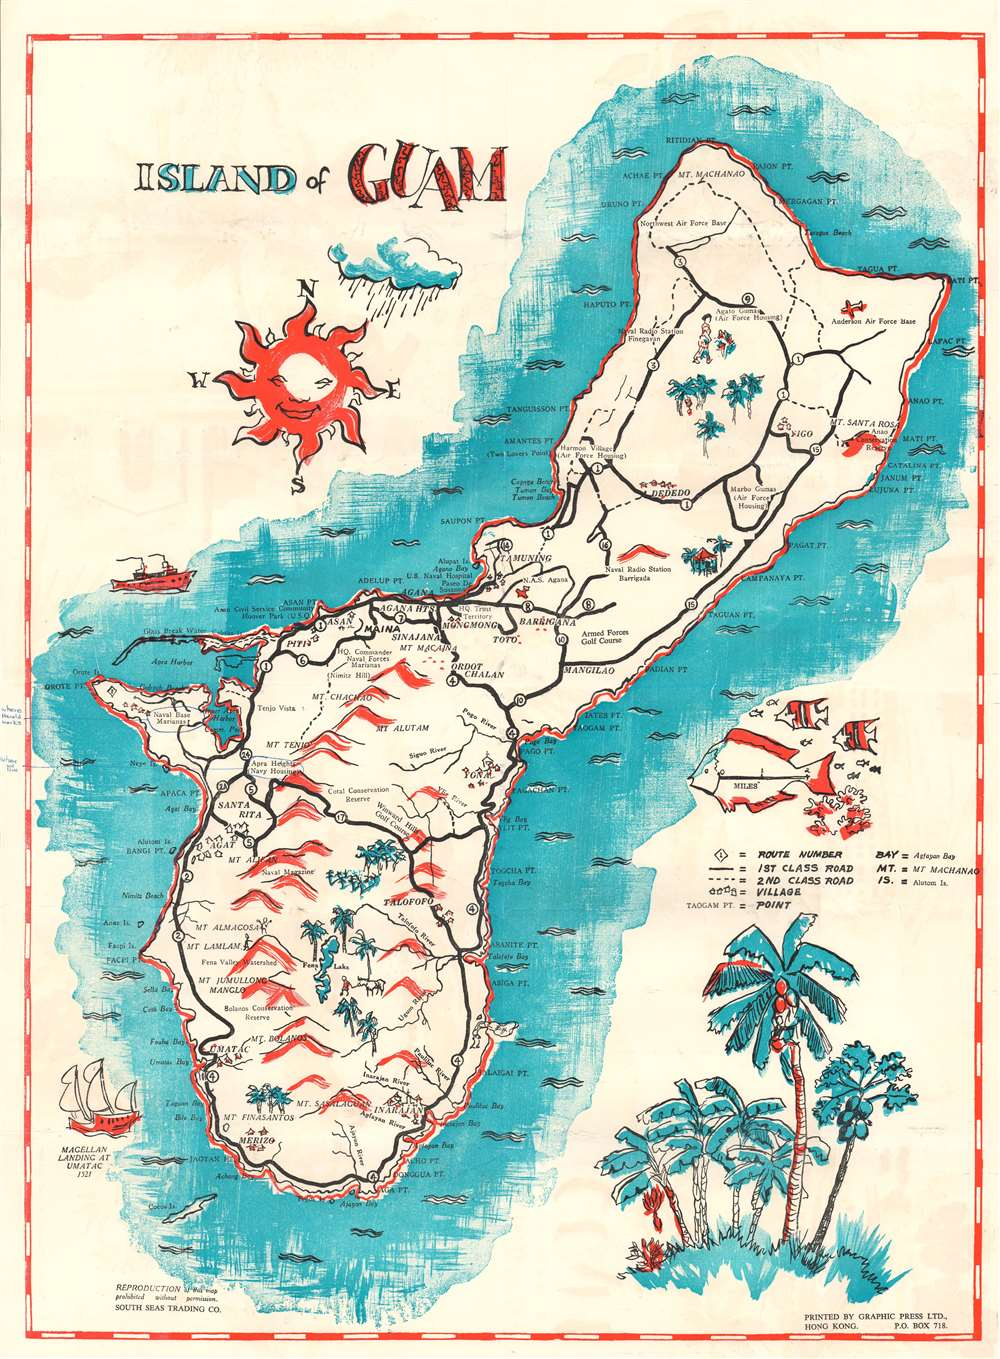 Pictorial and Road Map of Guam. Island of Guam. - Main View